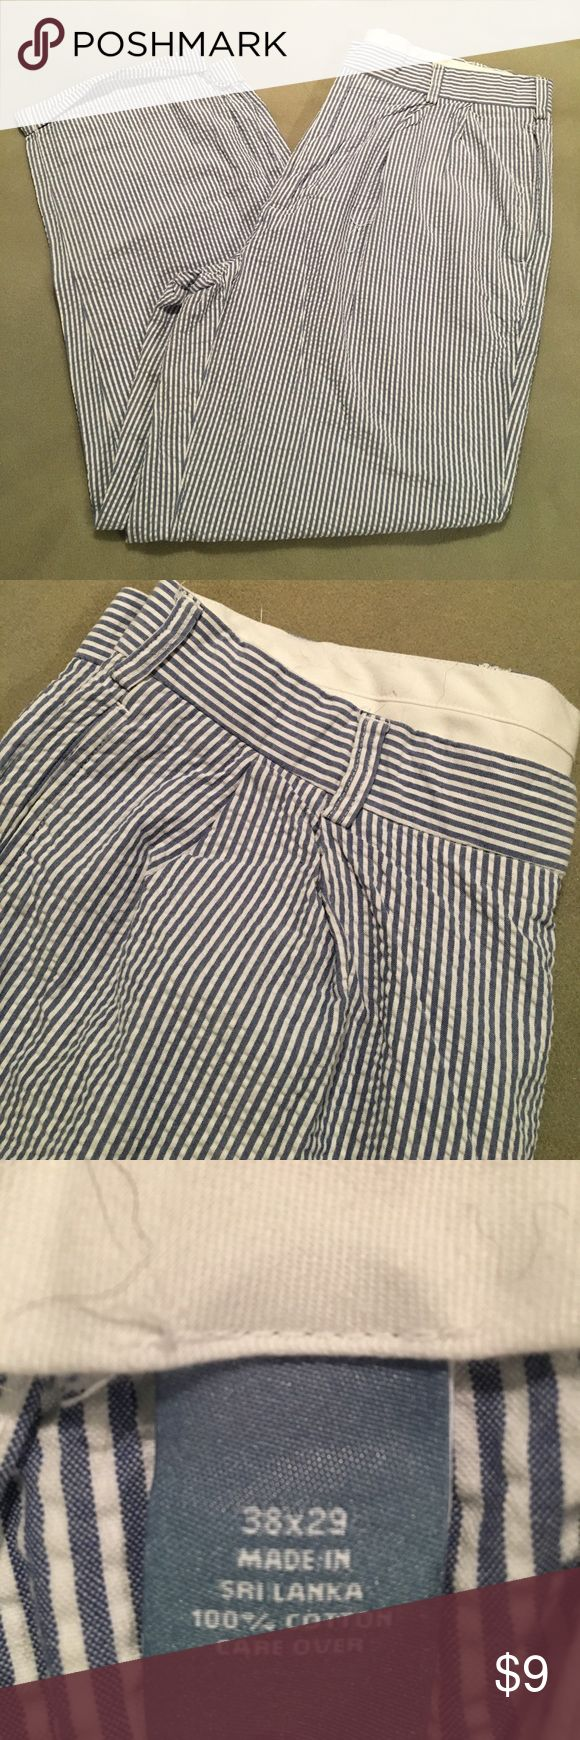 Seersucker pant with pleat Great condition. Jos A Bank Pants Chinos & Khakis